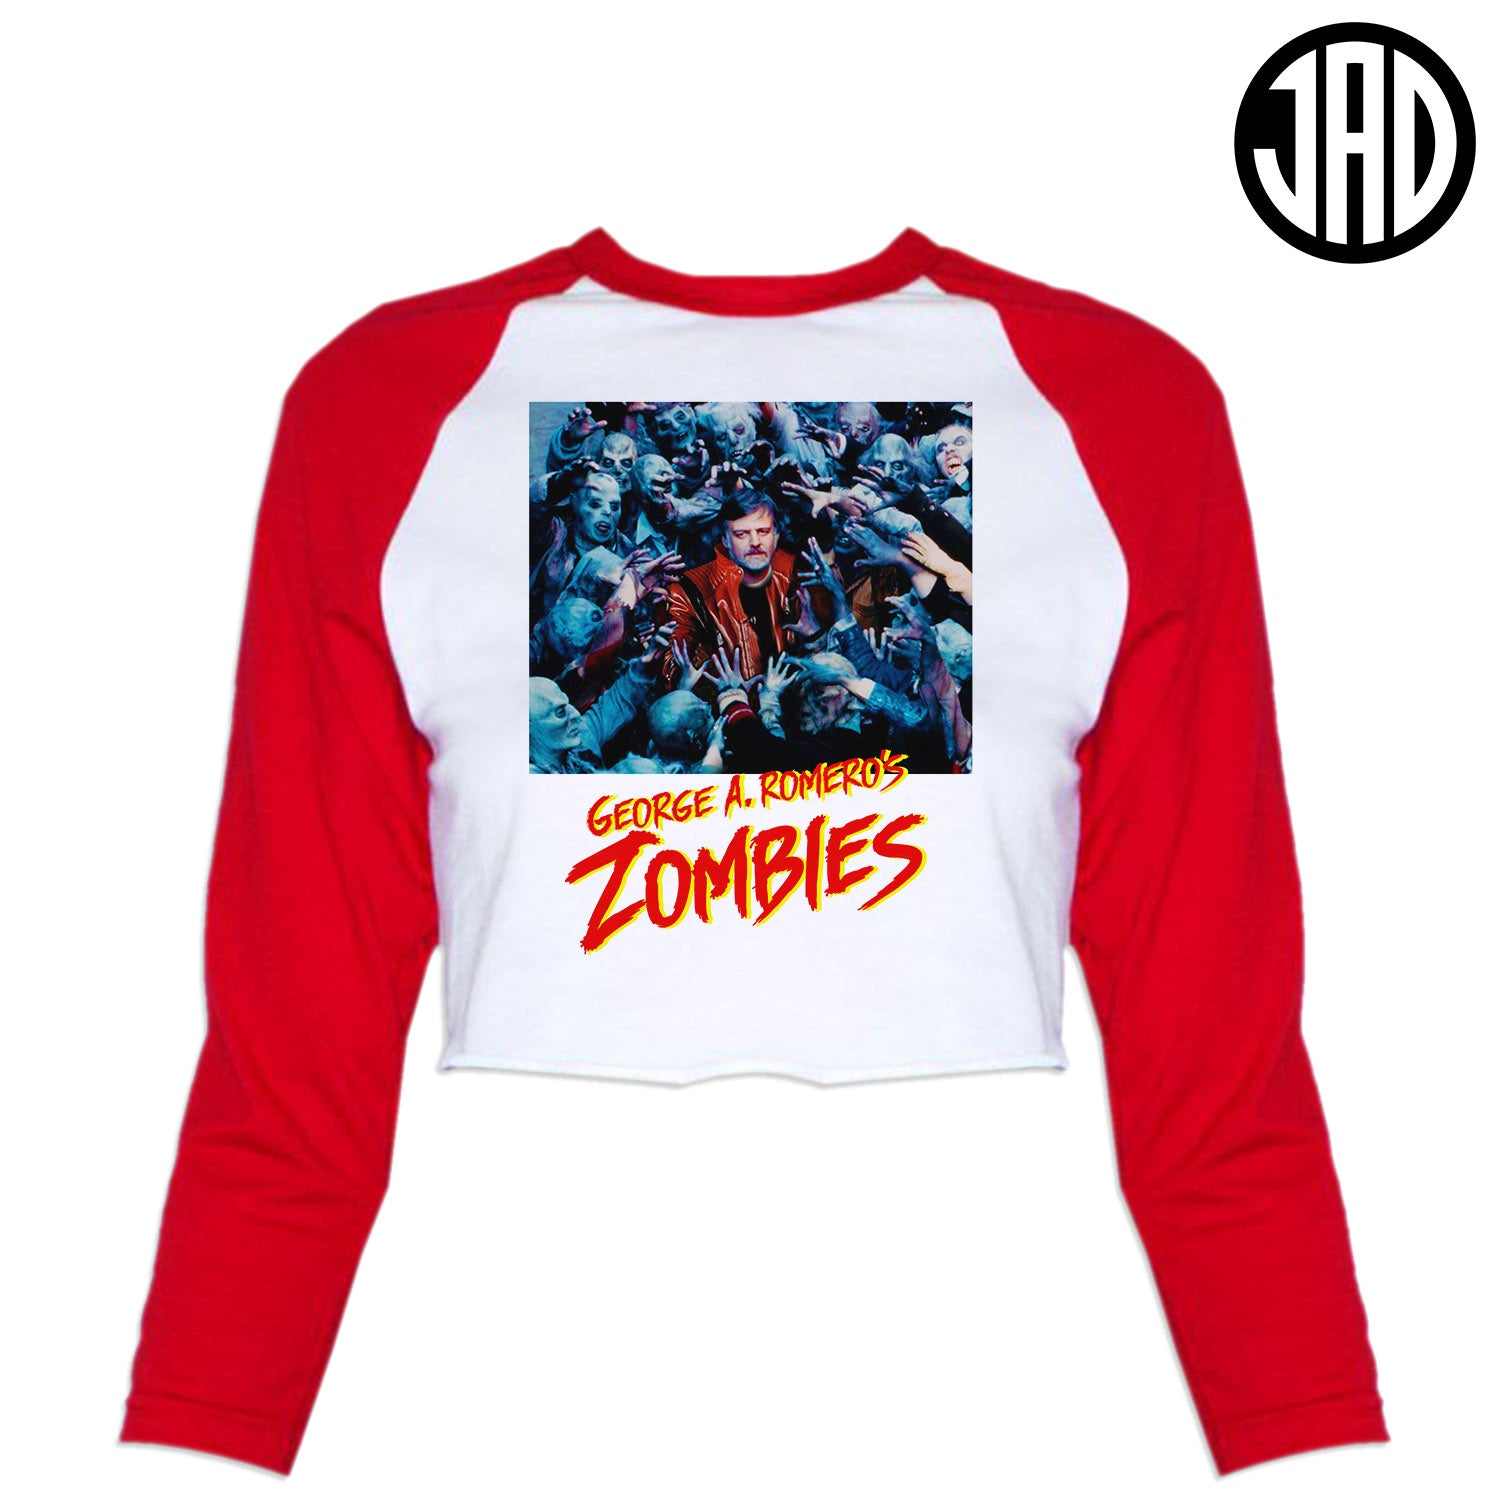 GAR Zombies - Women's Cropped Baseball Tee